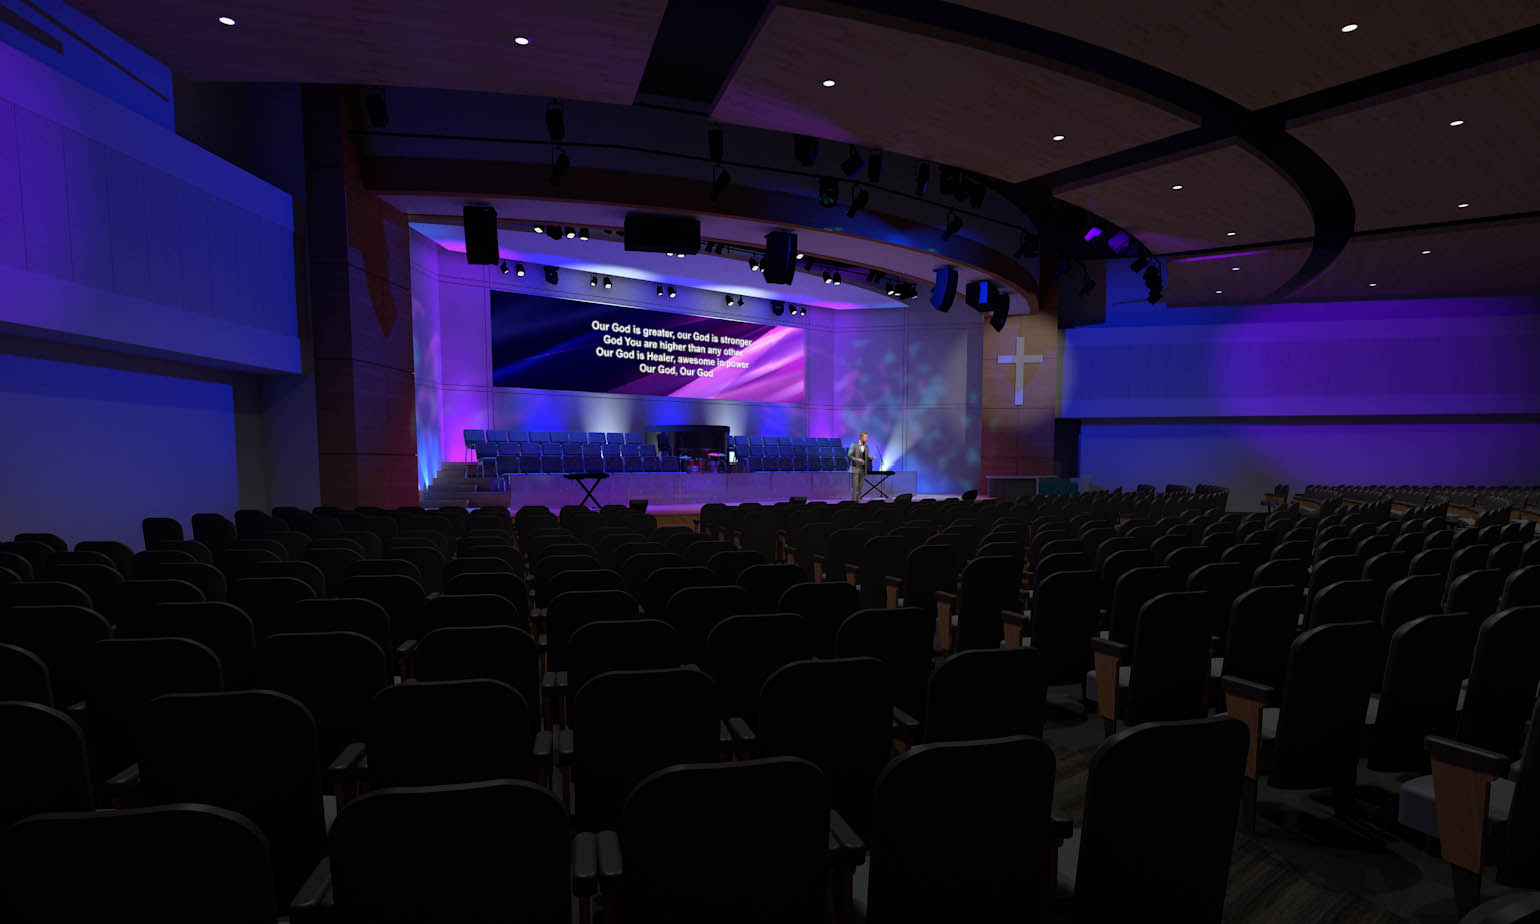 Why does it take so long to get a quote for church av systems?